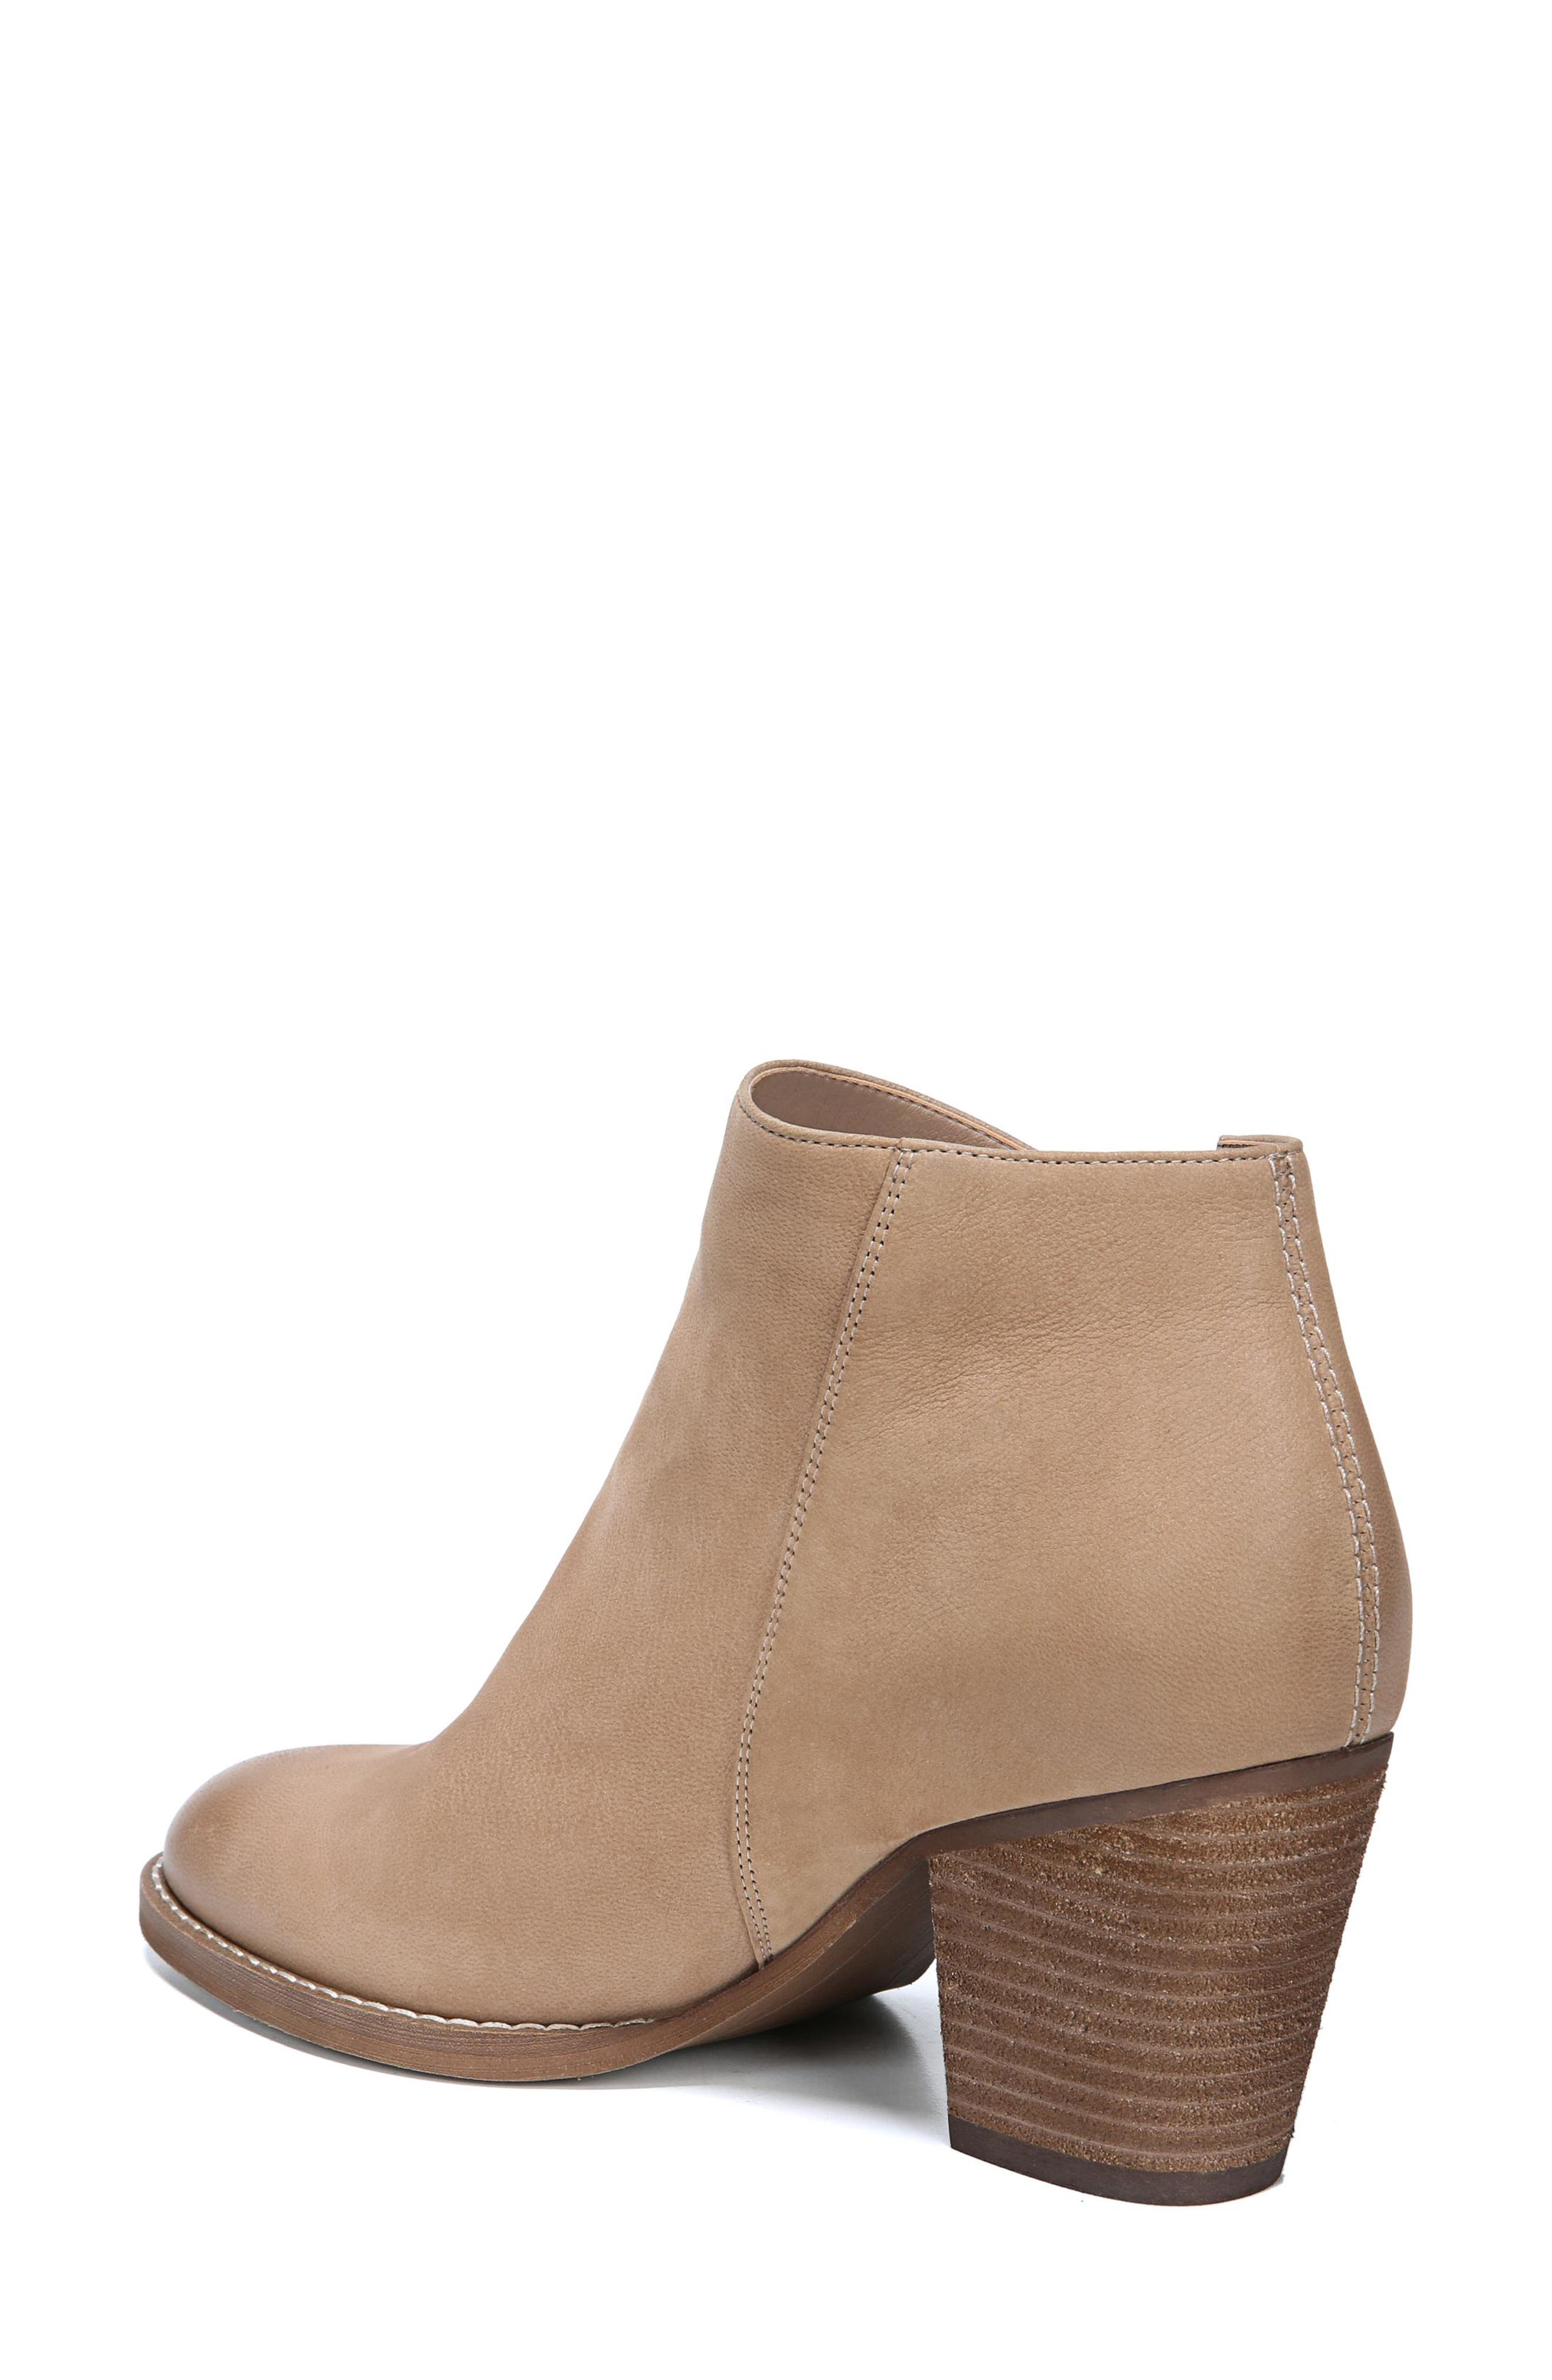 Macon Bootie,                             Alternate thumbnail 2, color,                             Golden Caramel Nubuck Leather